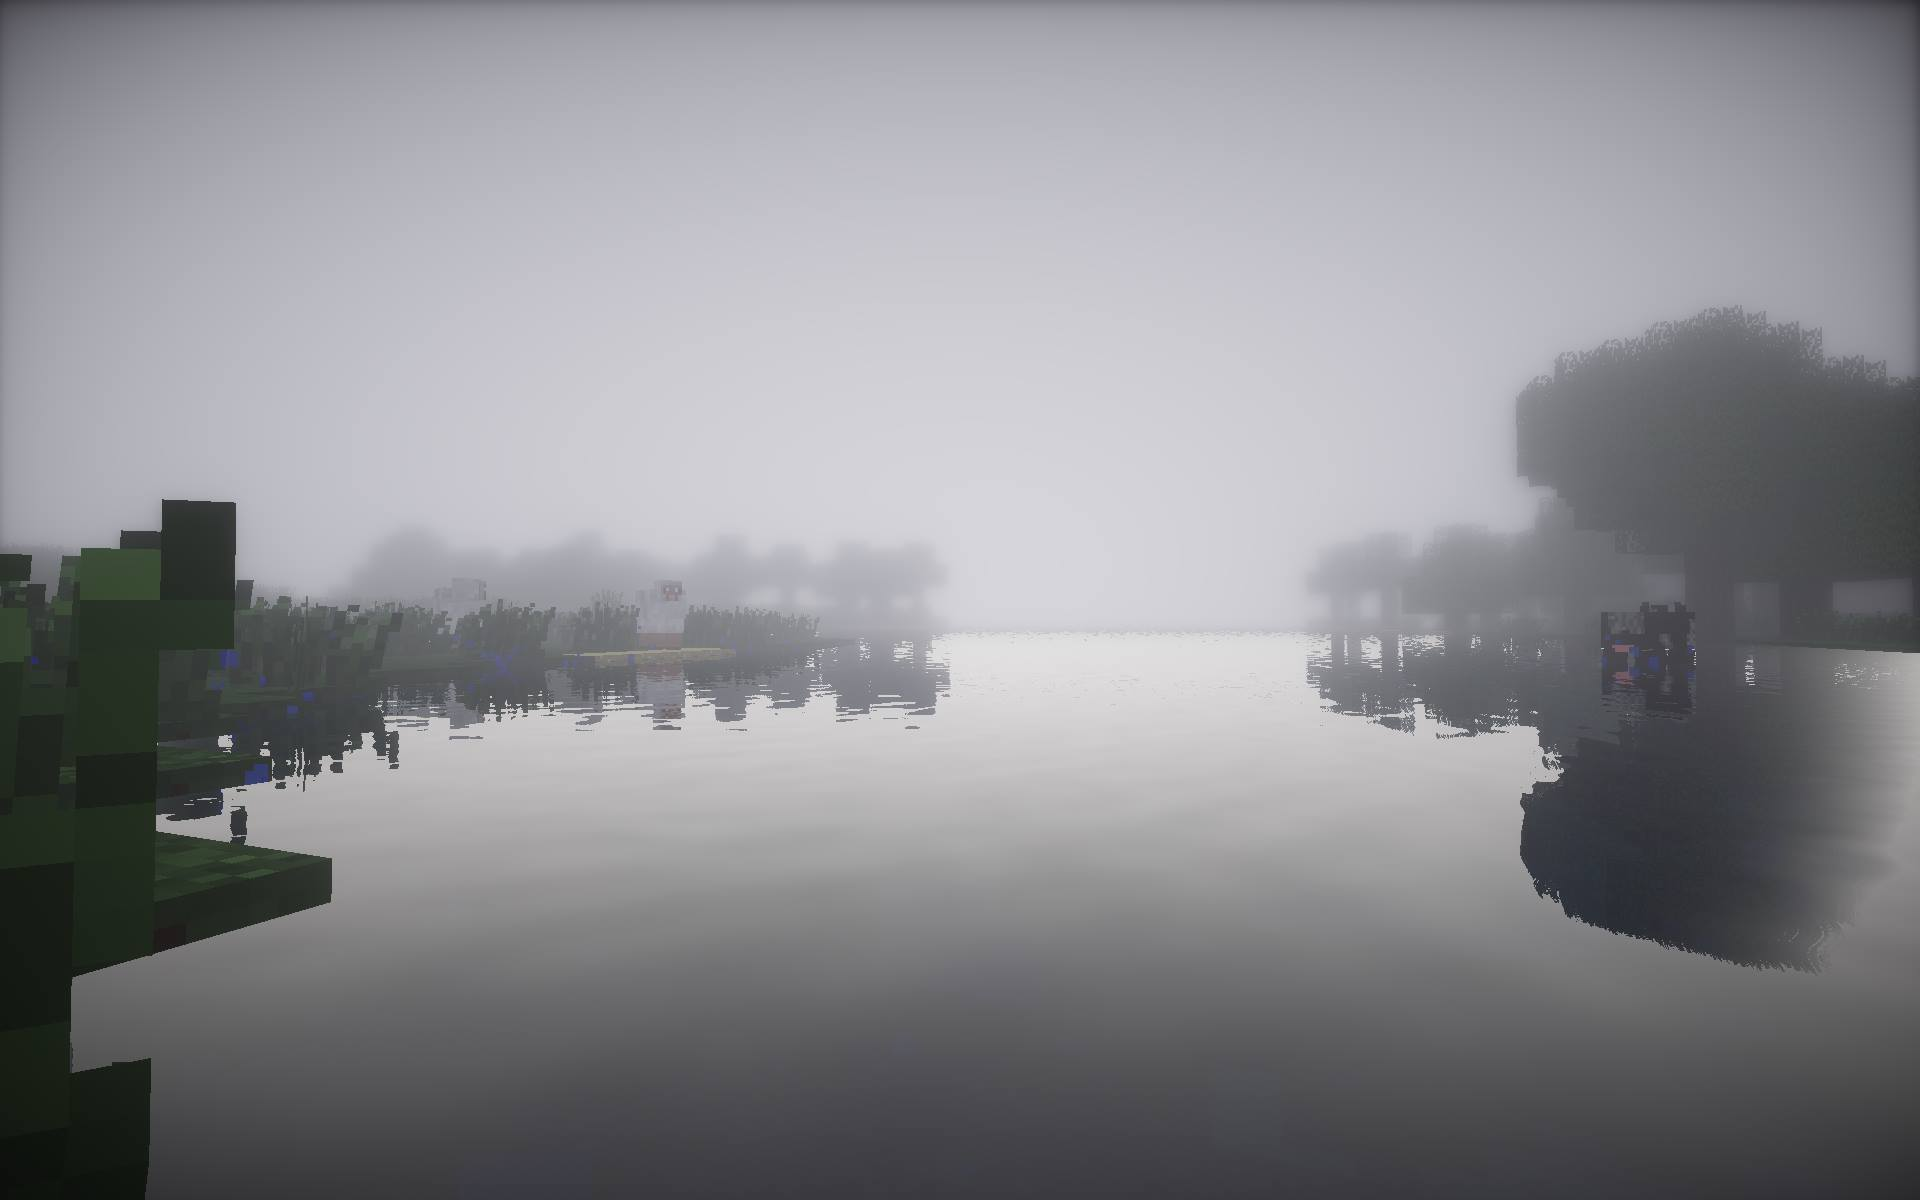 minecraft_fog_shader_by_bot_blackontrack-d8gn13k